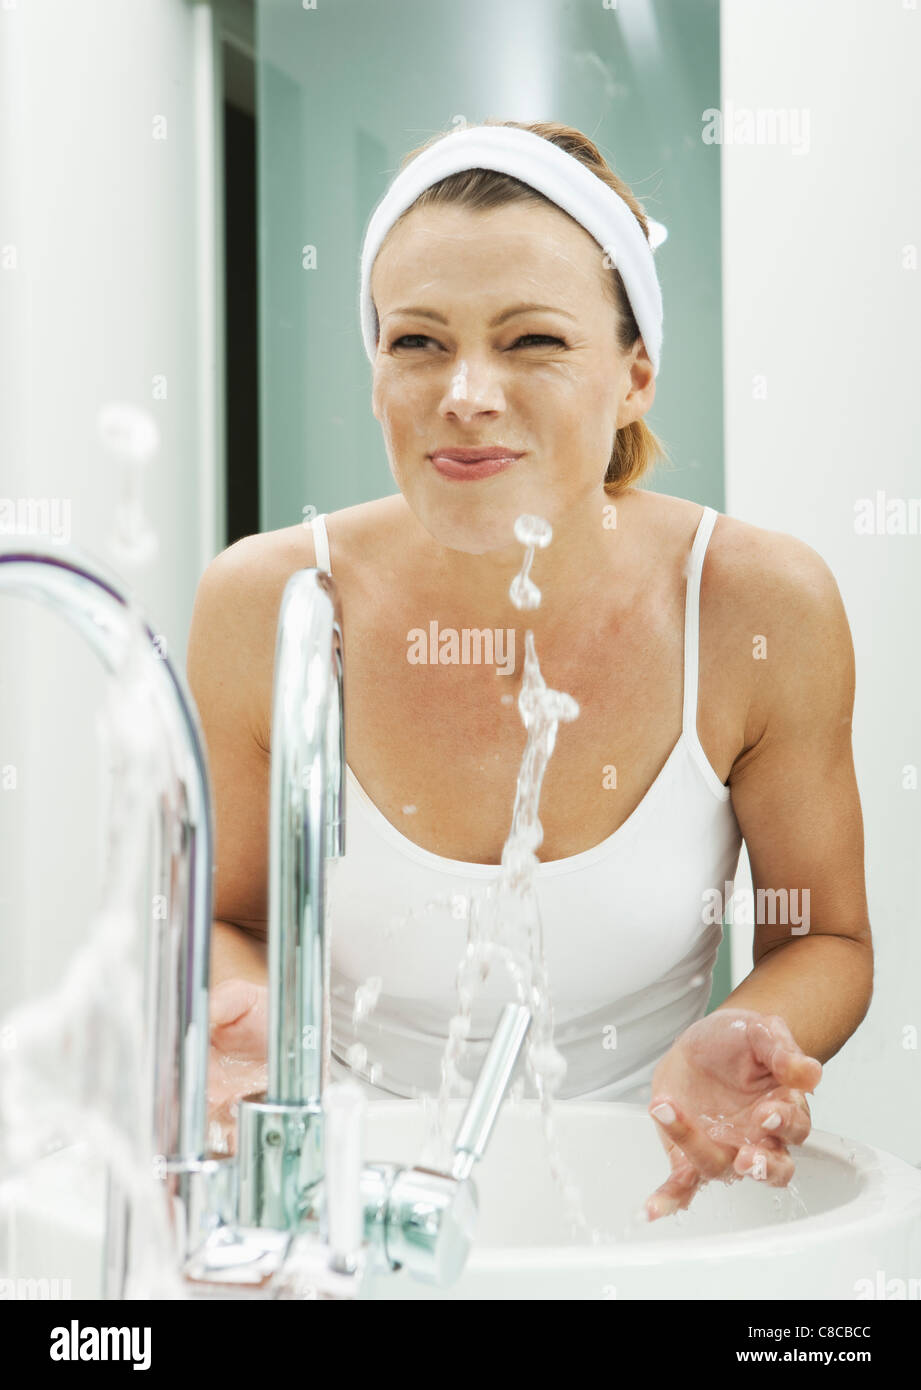 Woman washing her face in bathroom - Stock Image